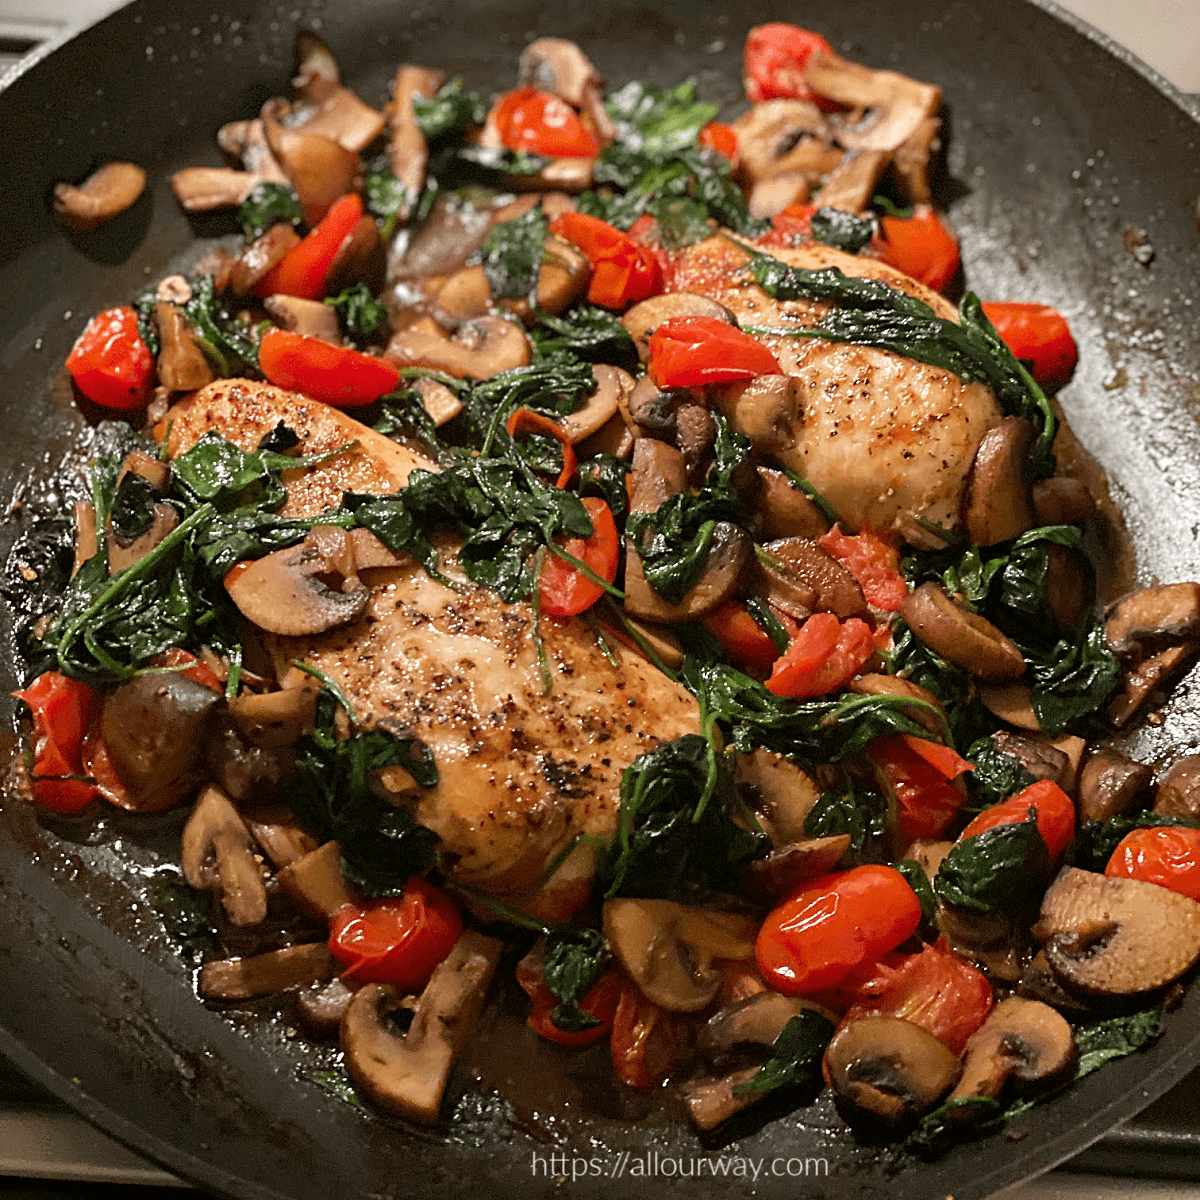 Two Chicken Breasts Florentine in large skillet with spinach and grape tomatoes, mushrooms.